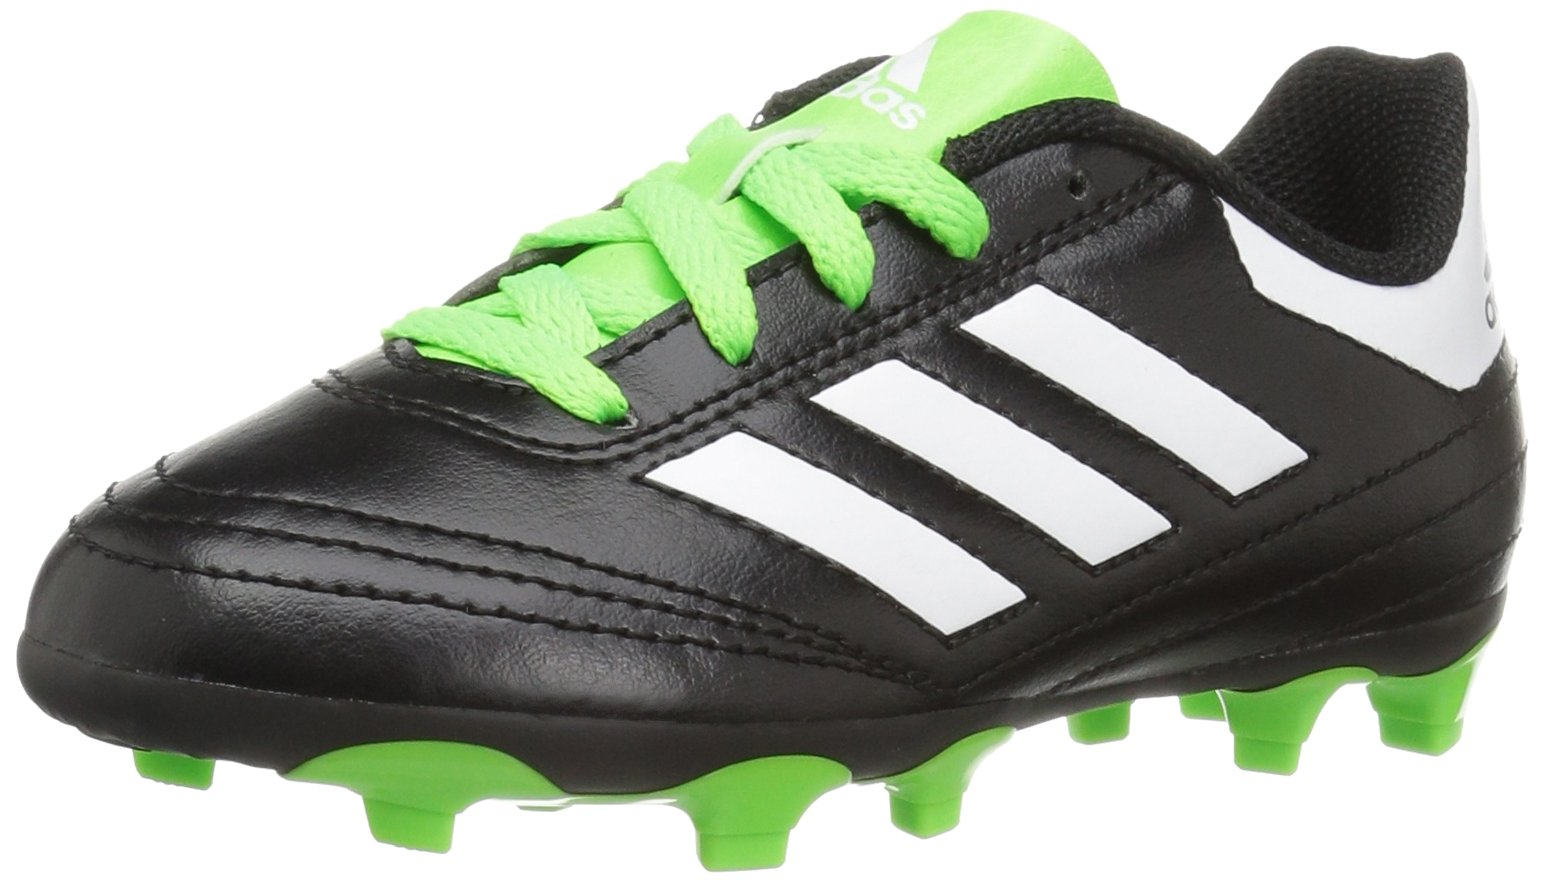 Adidas Soccer Shoe Replacement Laces